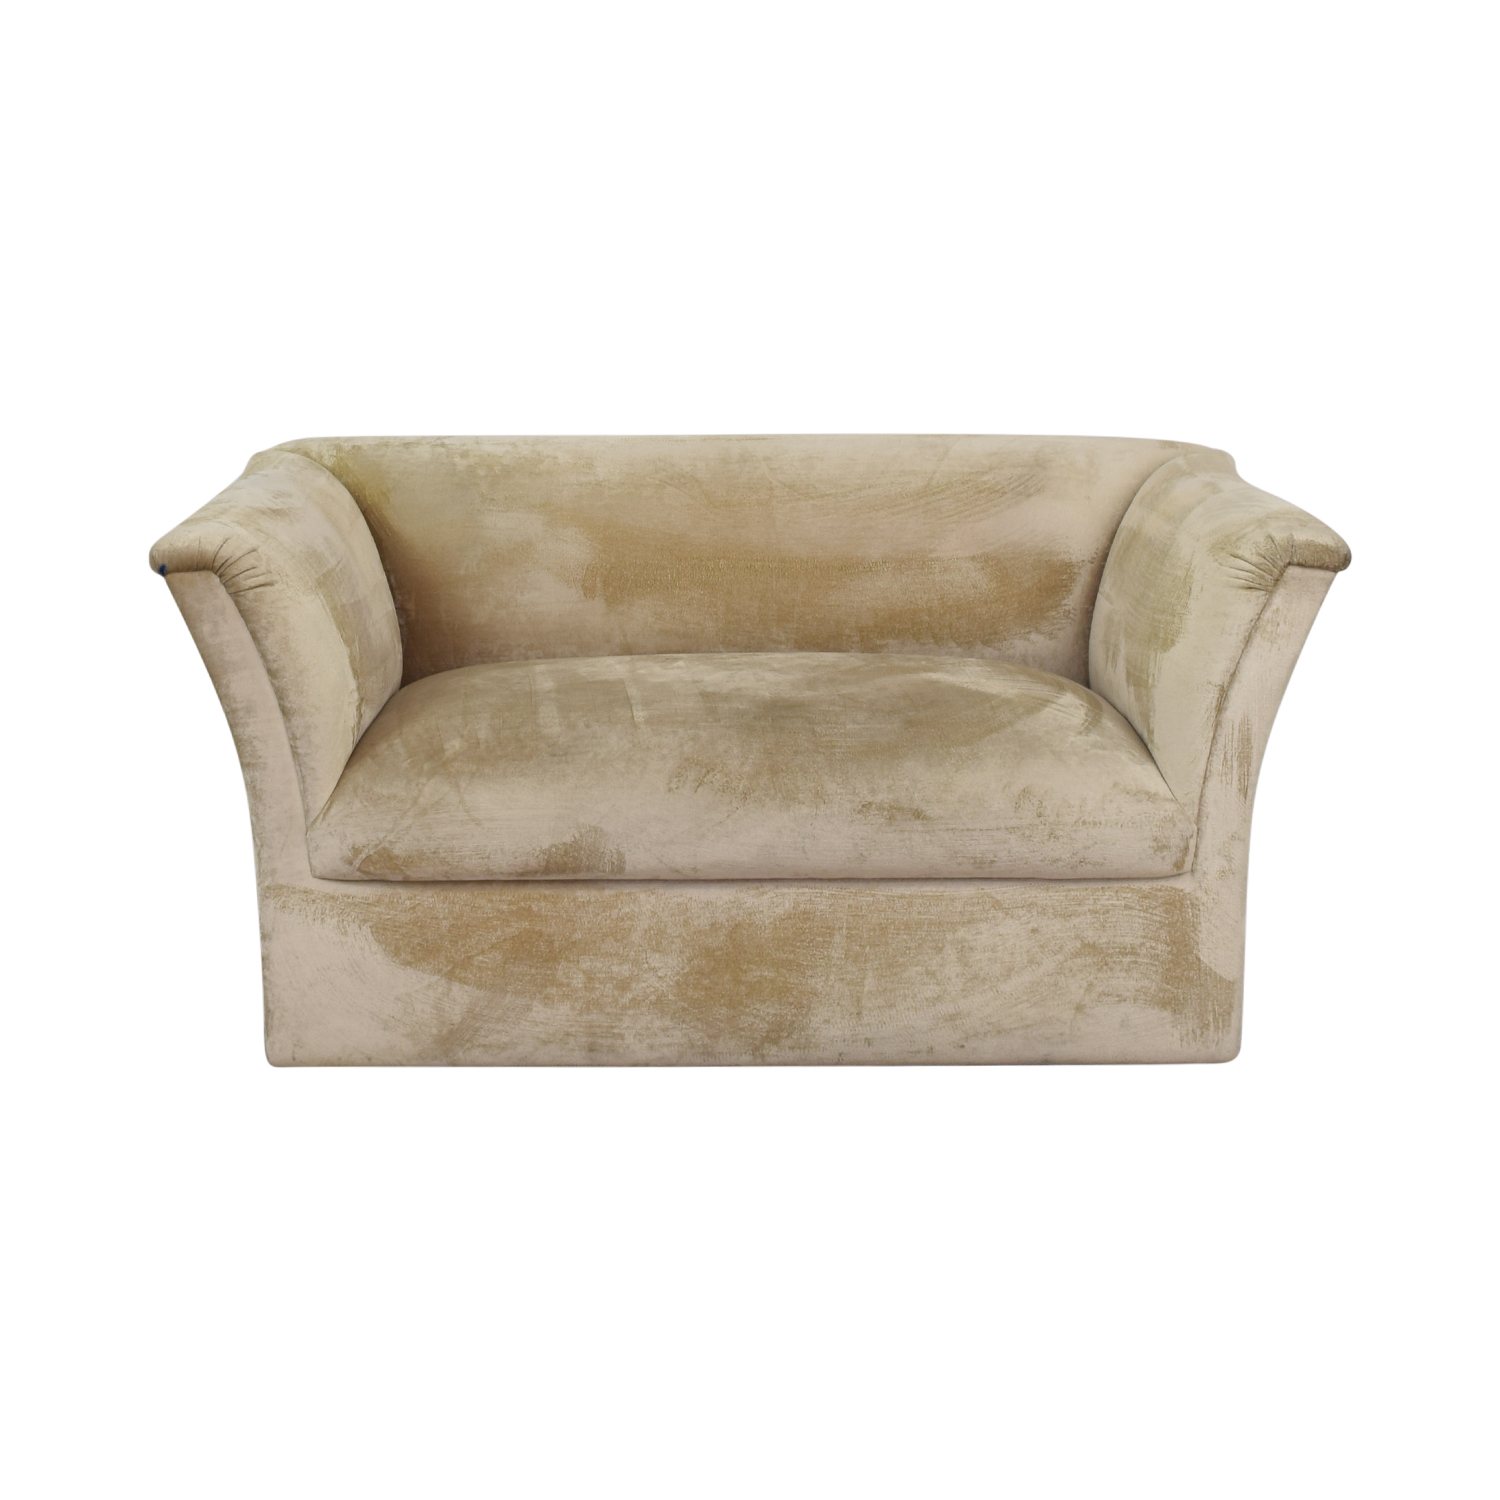 J Robert Scott J Robert Scott Beige Brushed Velvet Loveseat nj